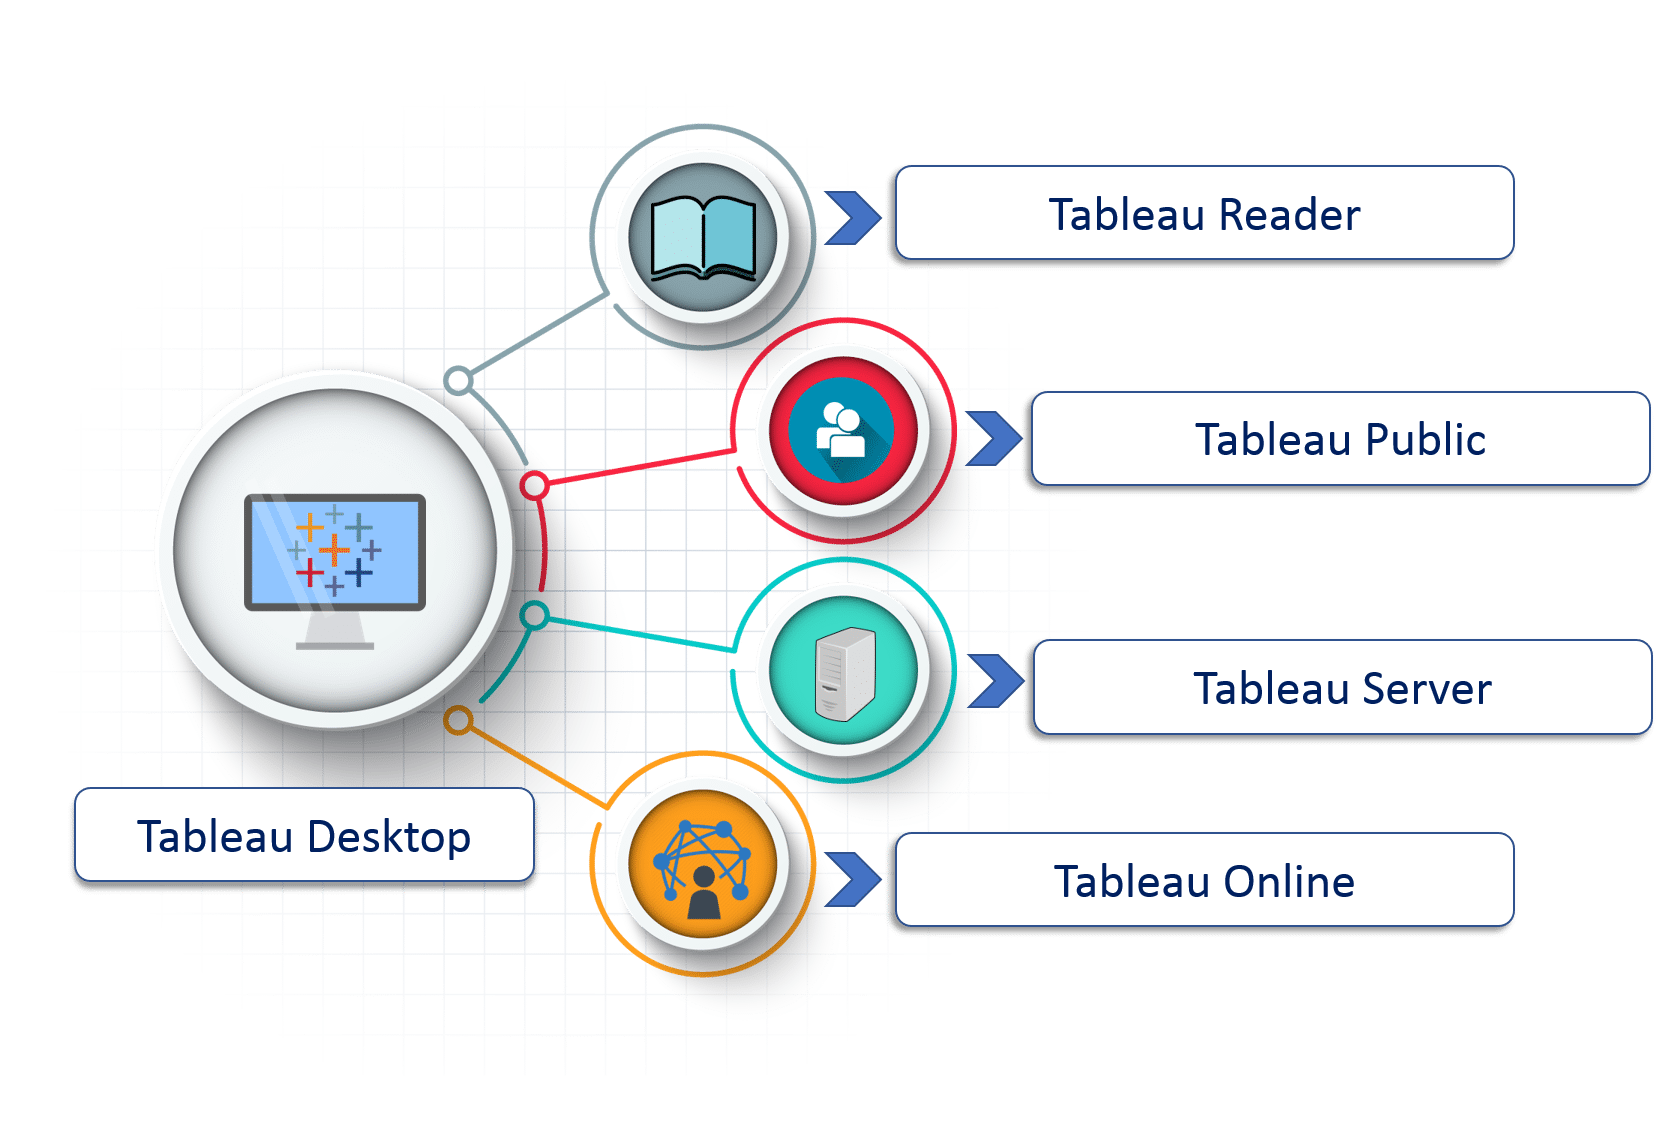 Top 50 Tableau Interview Questions And Answers For 2021 Edureka